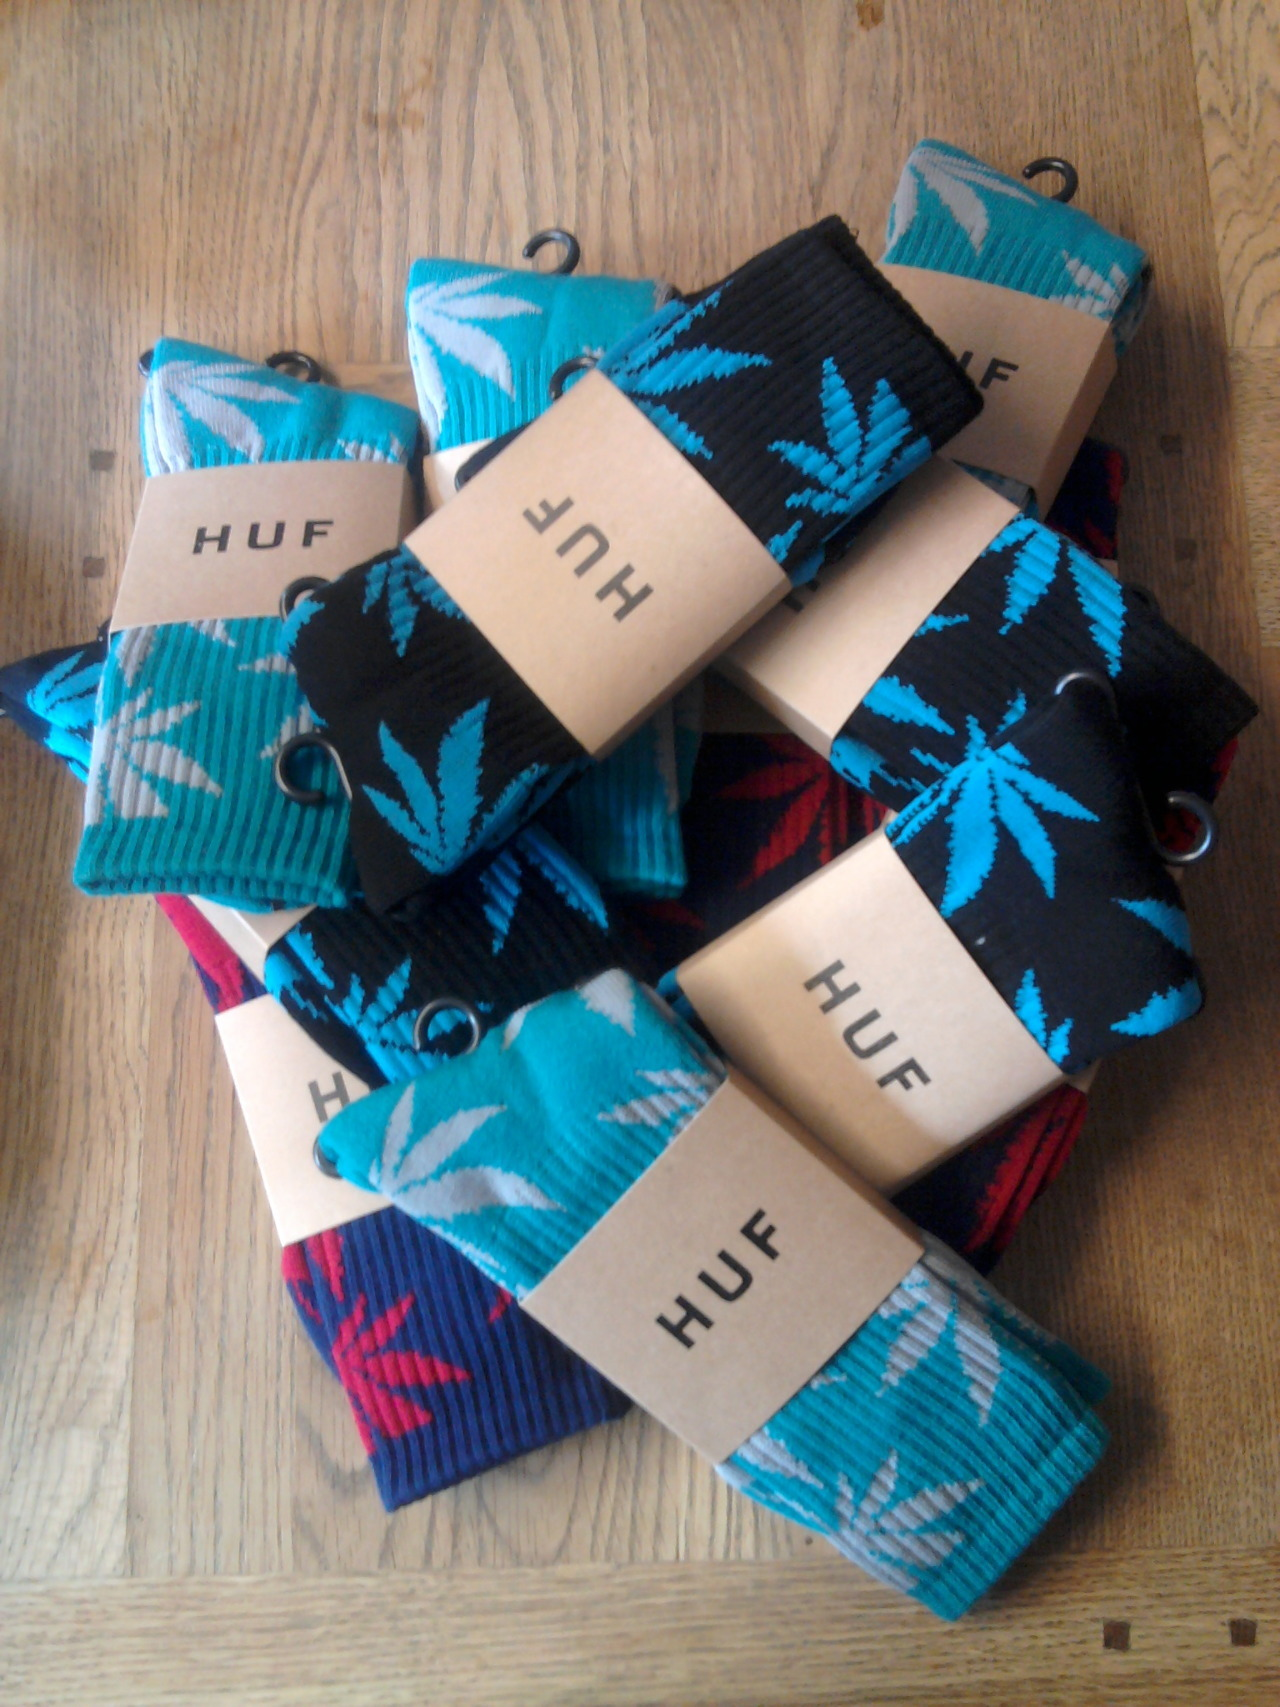 I WANT PLANT LIFE SOCKS SO BADLY